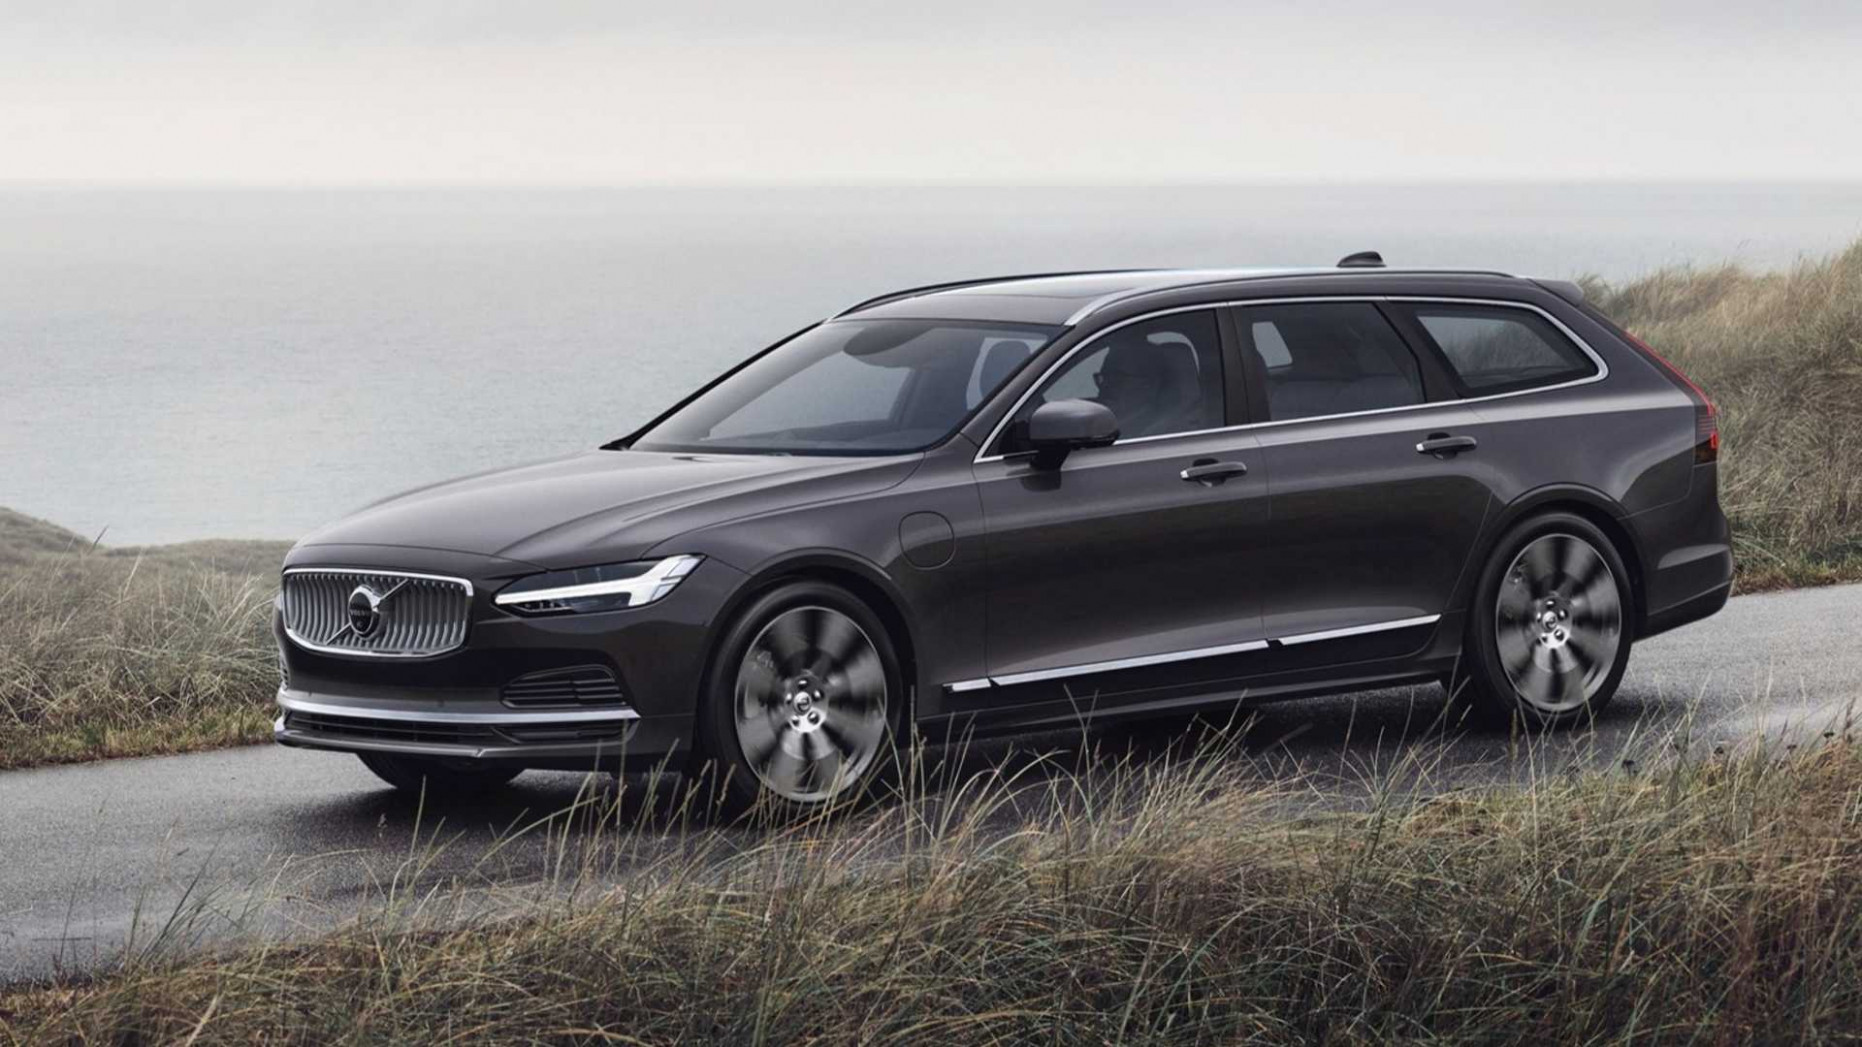 Volvo S100, V100, V100 Cross Country (100) | Motor10.com Bilder